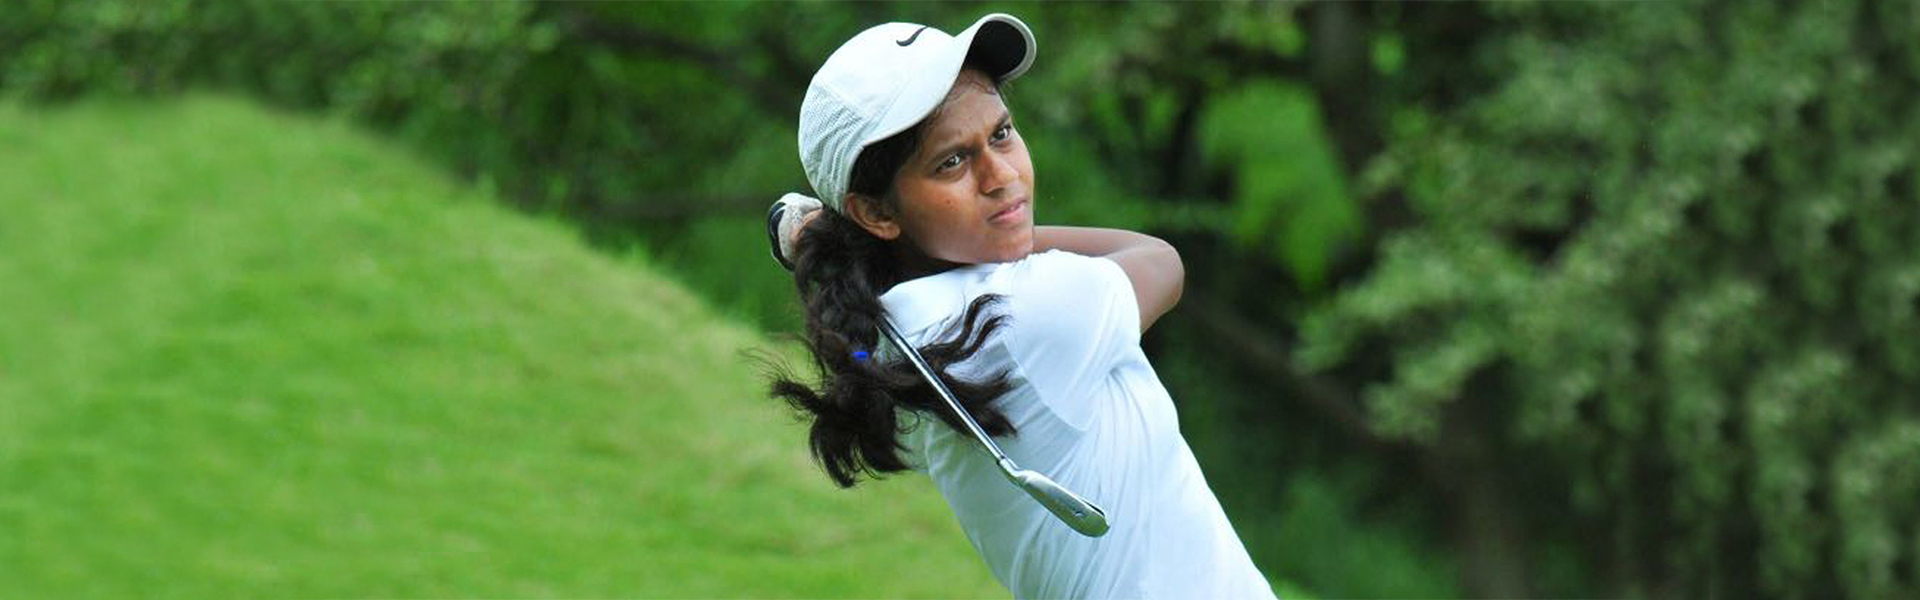 Hero Women's Indian Open: Pranavi Urs emerges as a top Indian in the tournament